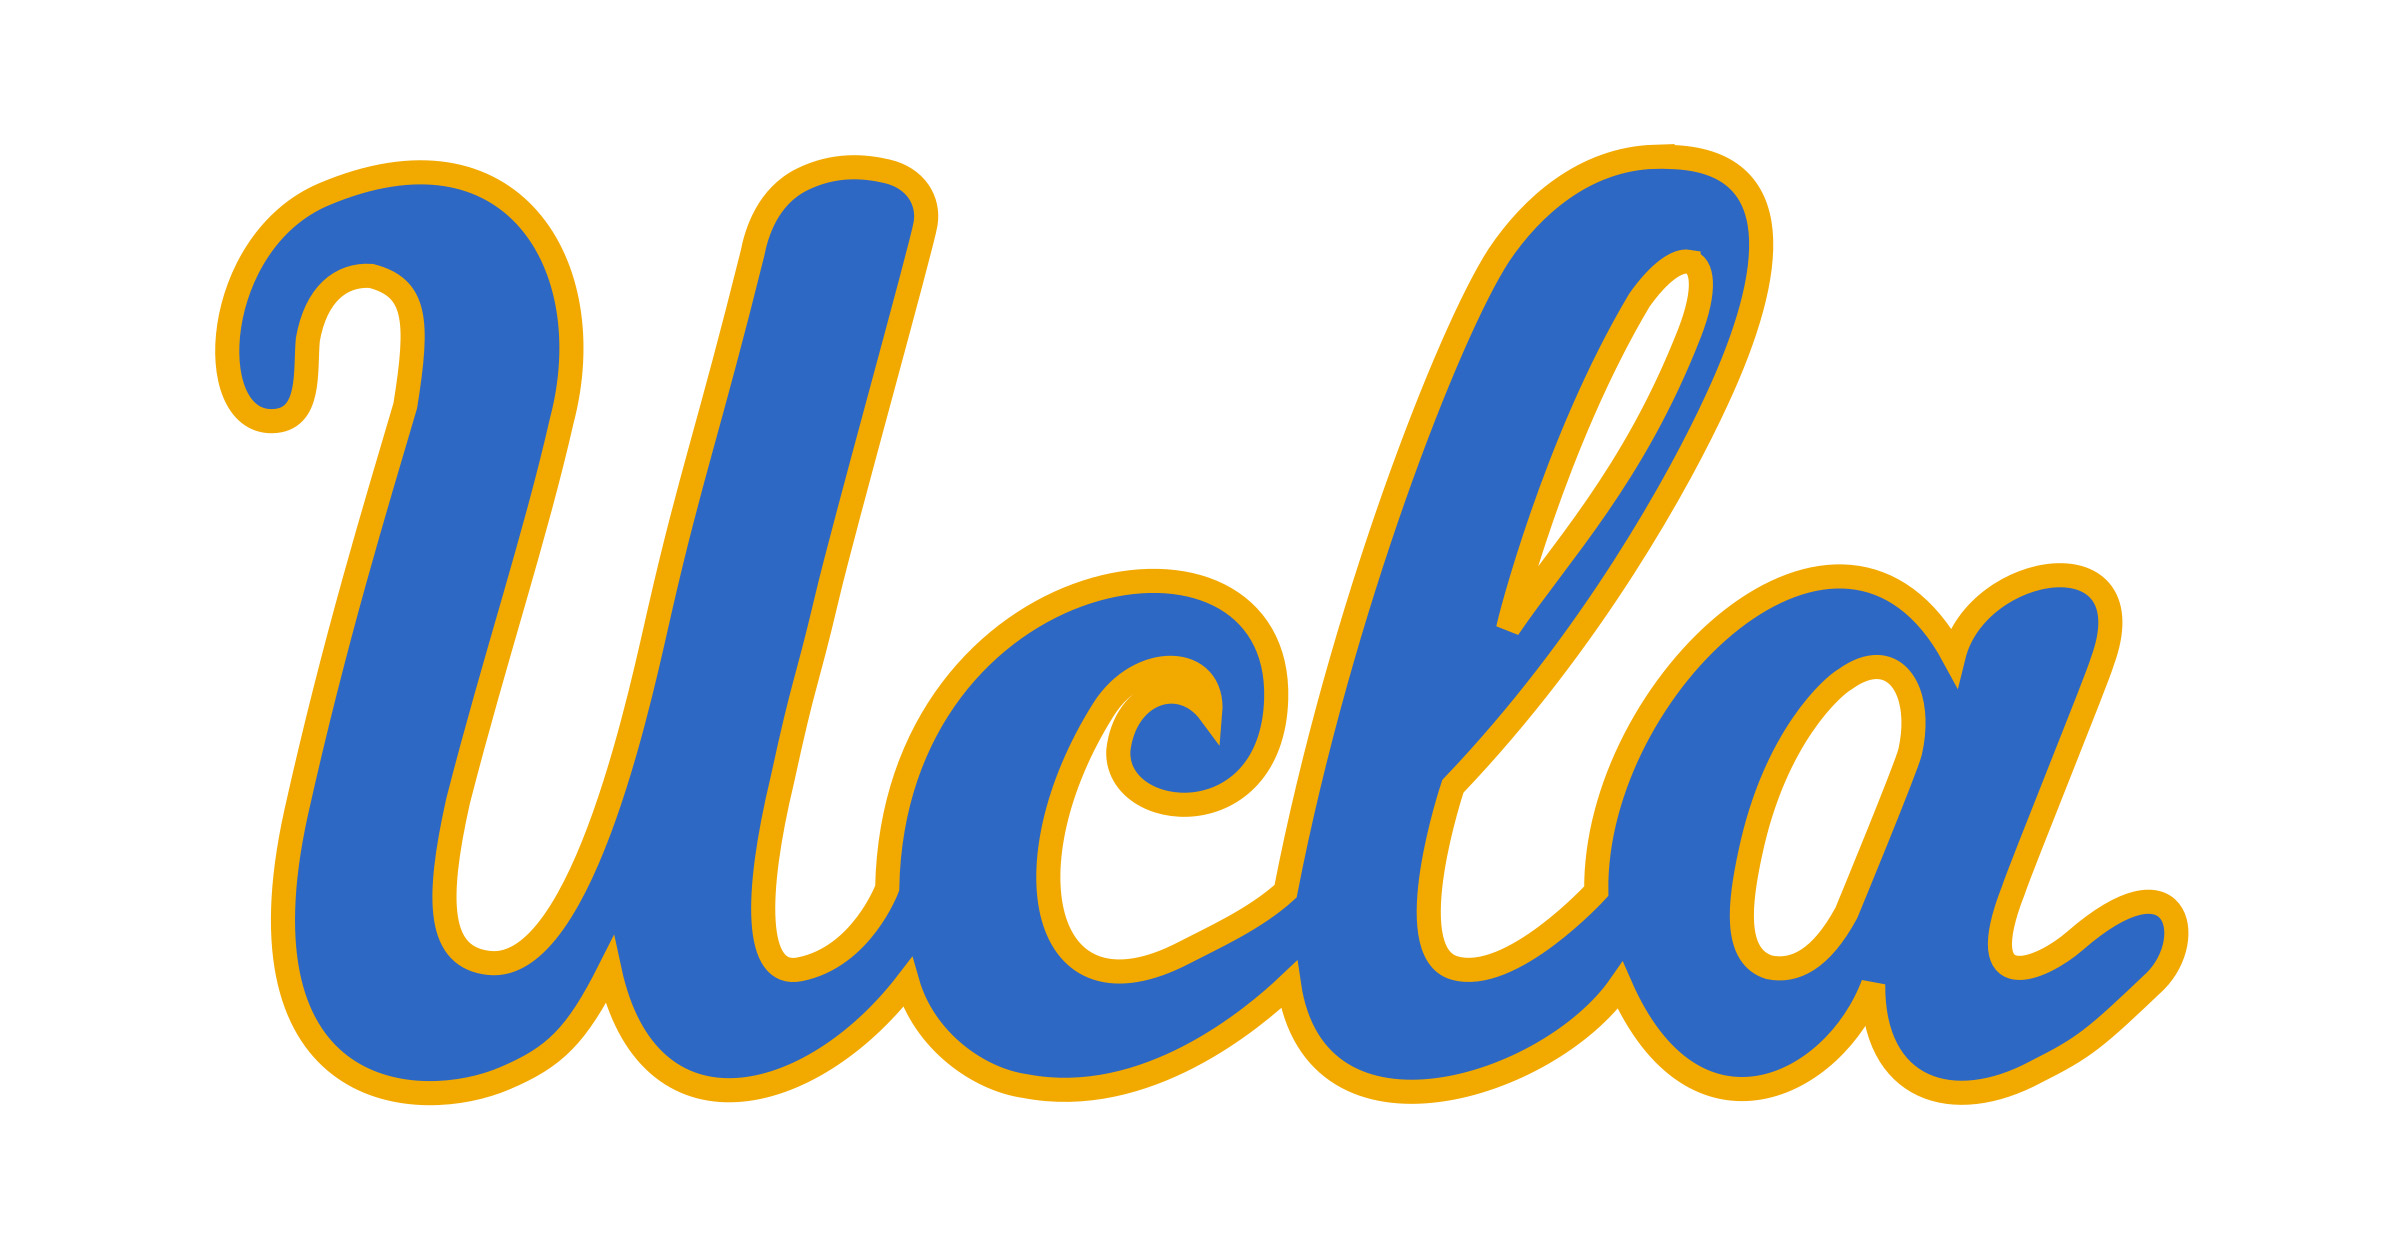 ucla logo coloring pages - photo#43